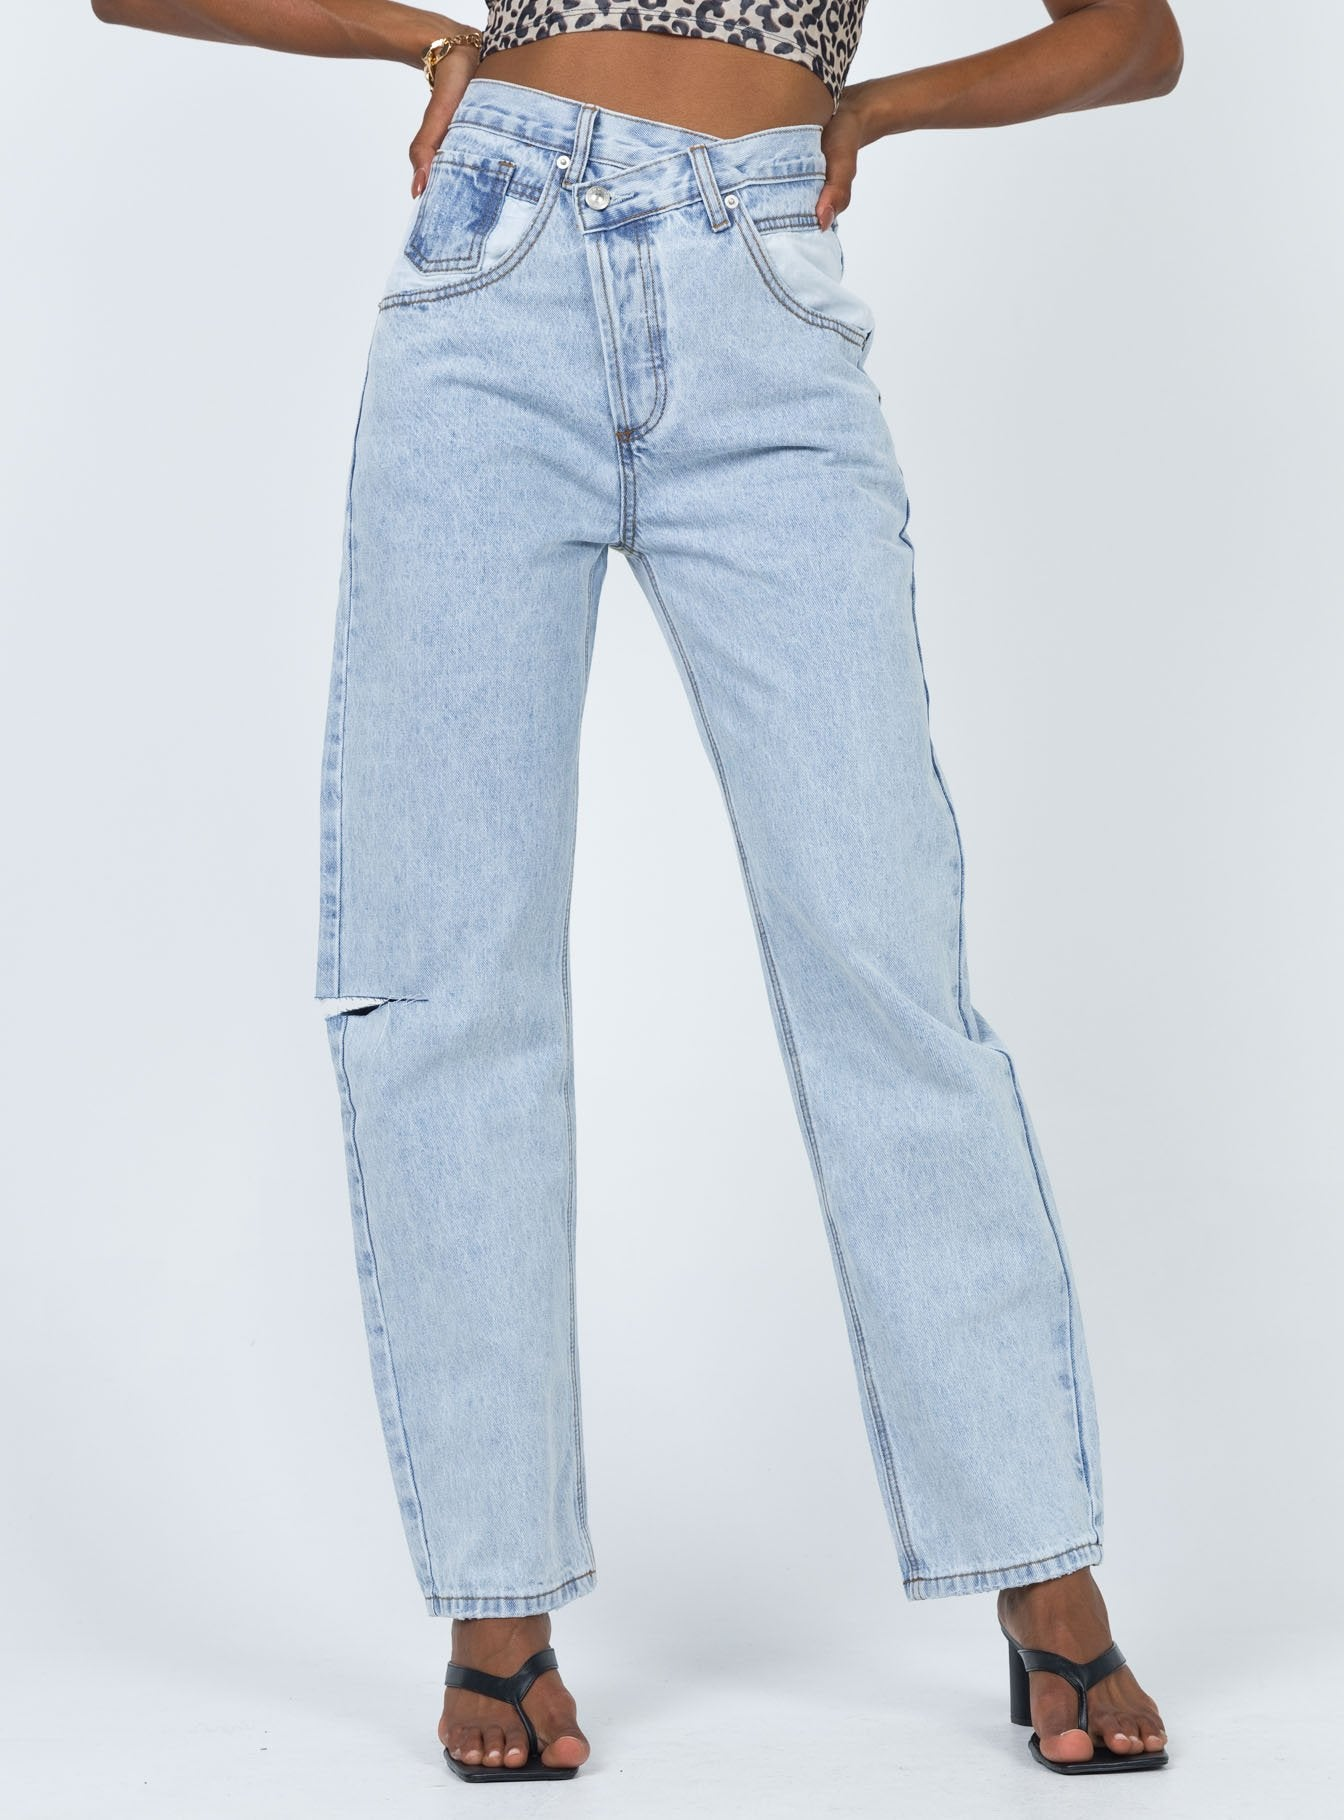 Holly Asymmetric With White Pockets Jean Light Wash Denim